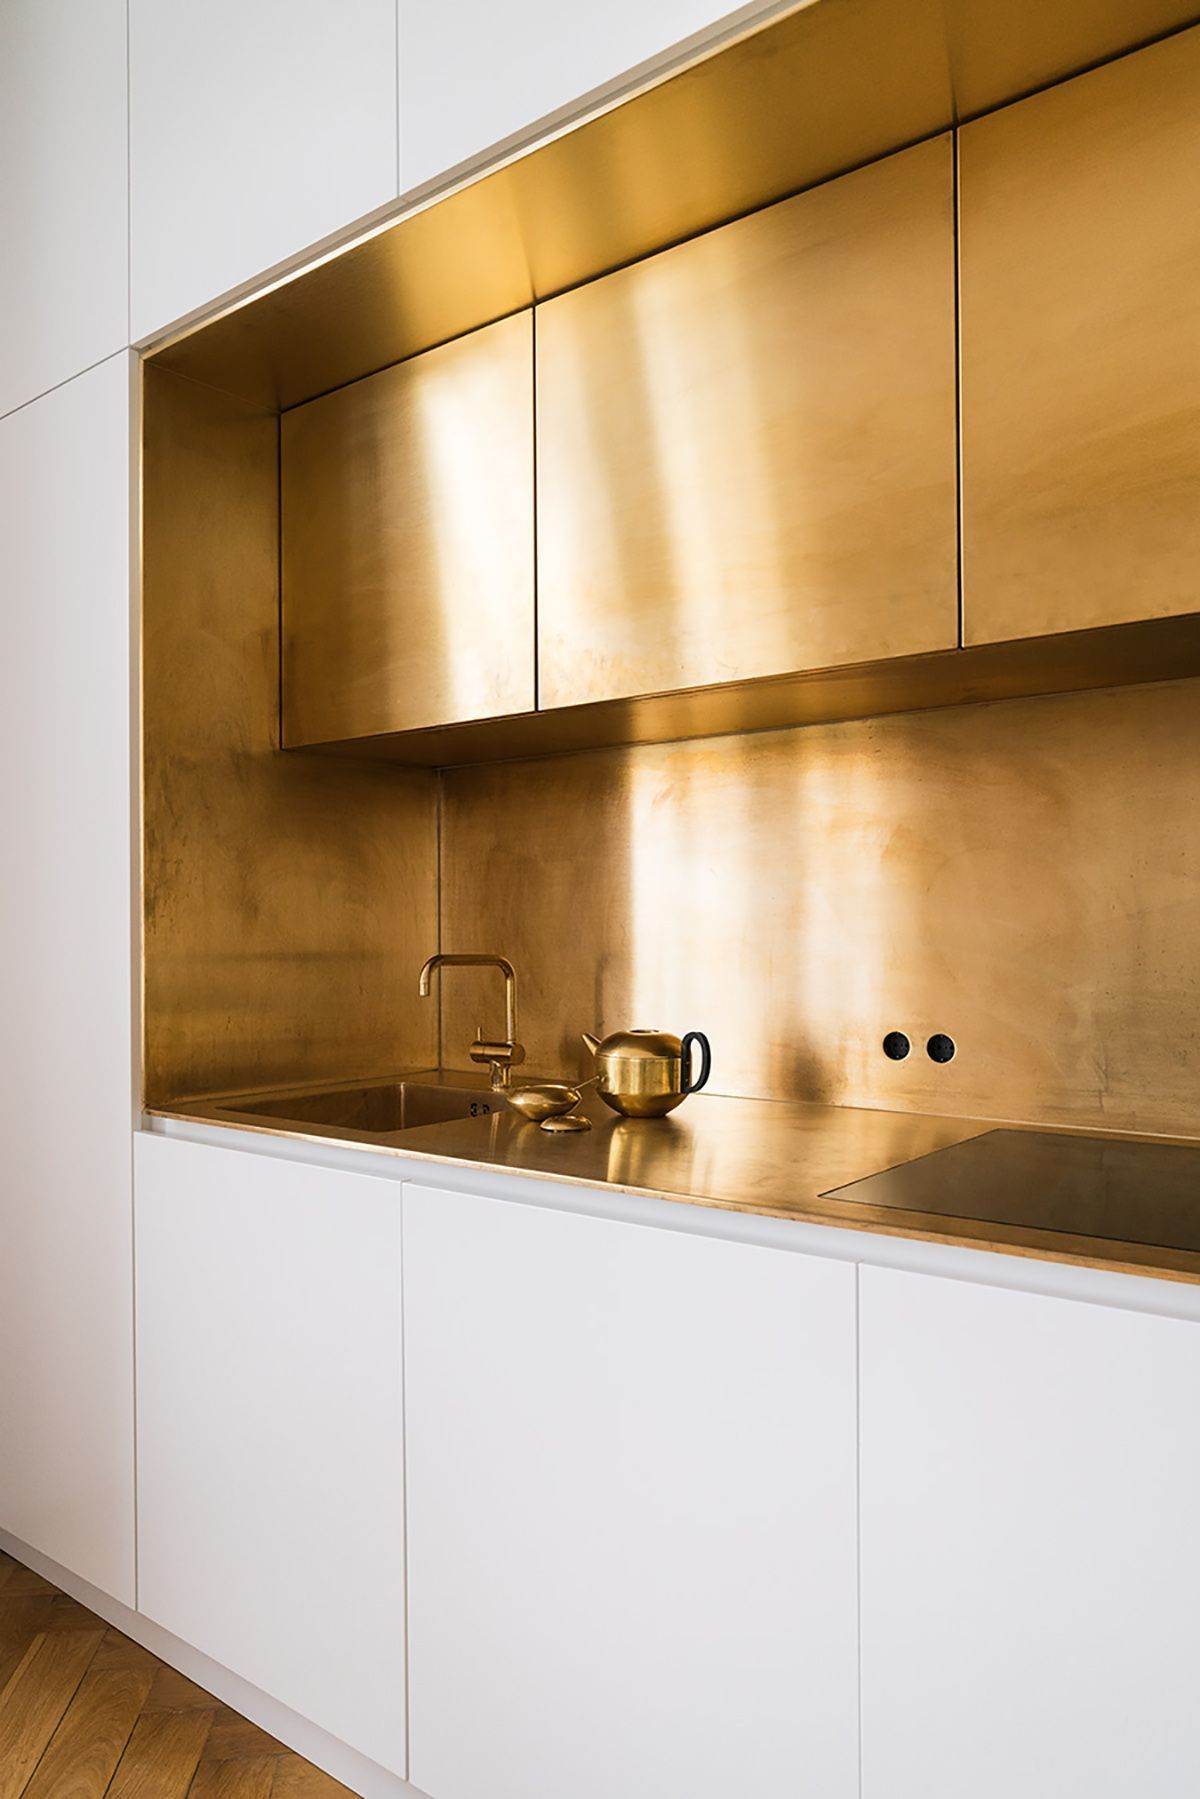 Gold Kitchen Cupboards Splash Back And Surfaces In 2019 Future